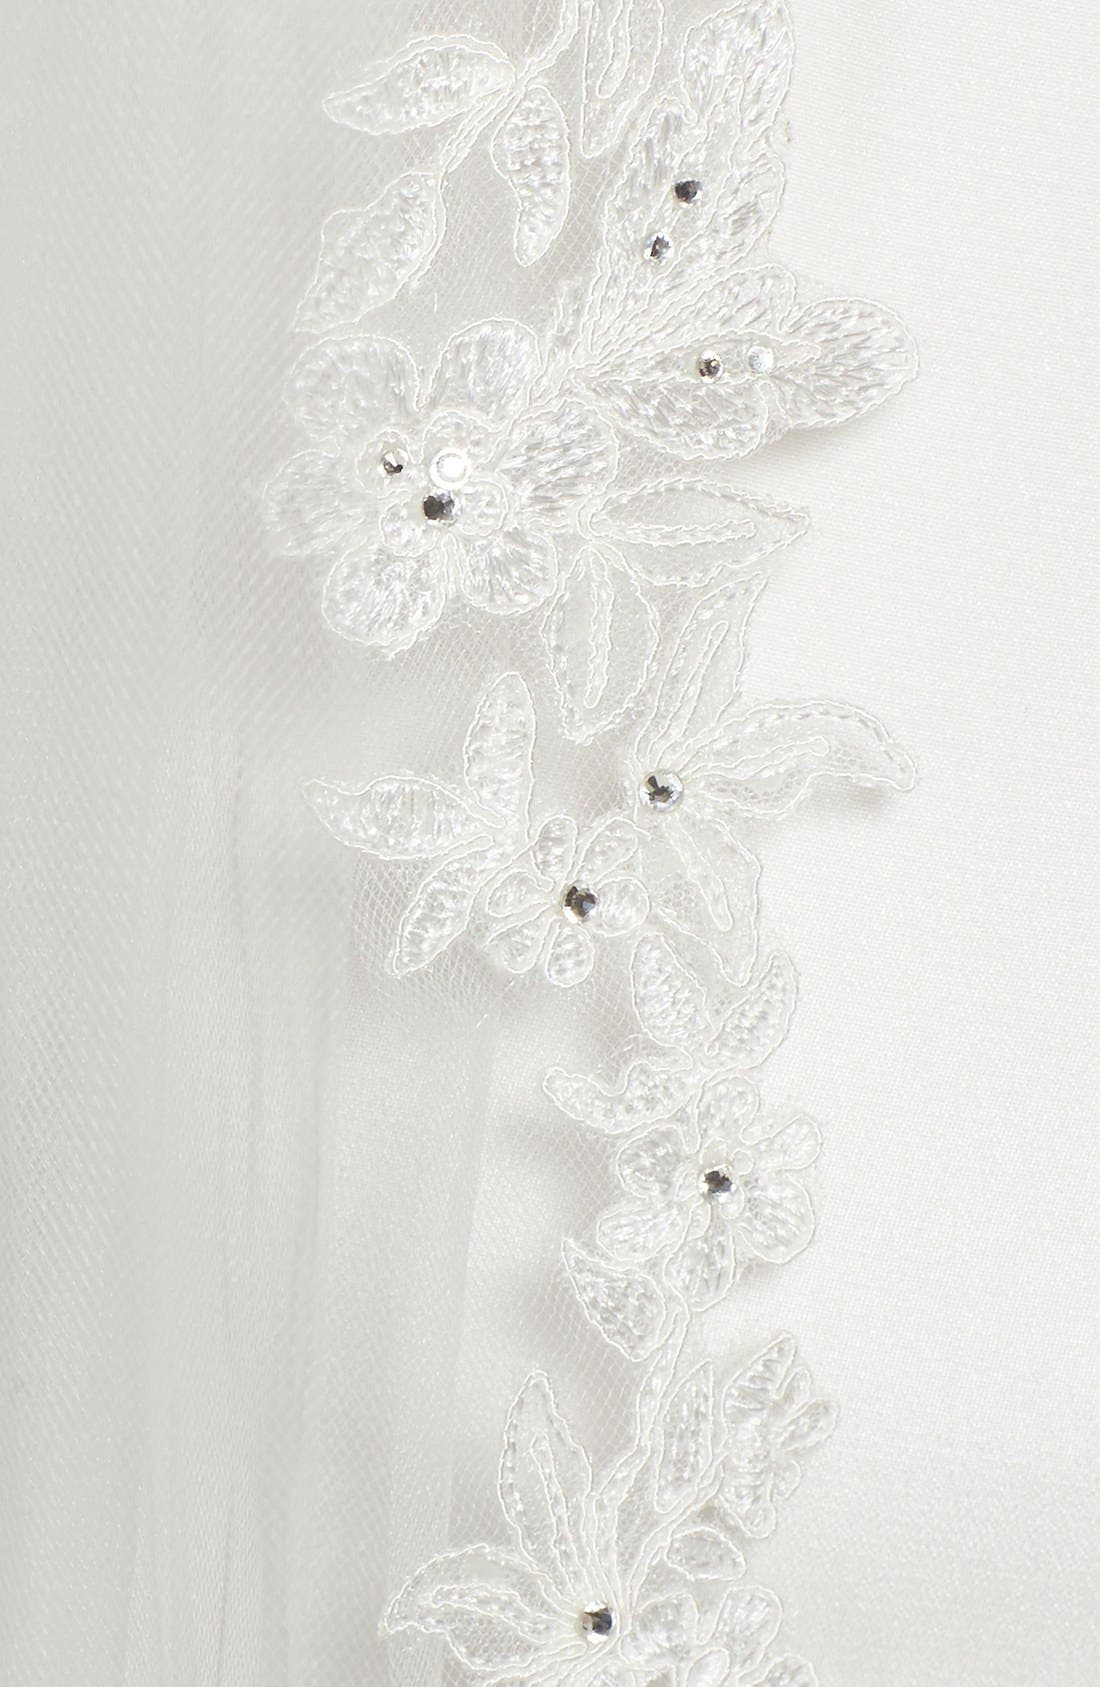 'Angelina' Lace Trim Tulle Veil,                             Alternate thumbnail 3, color,                             IVORY